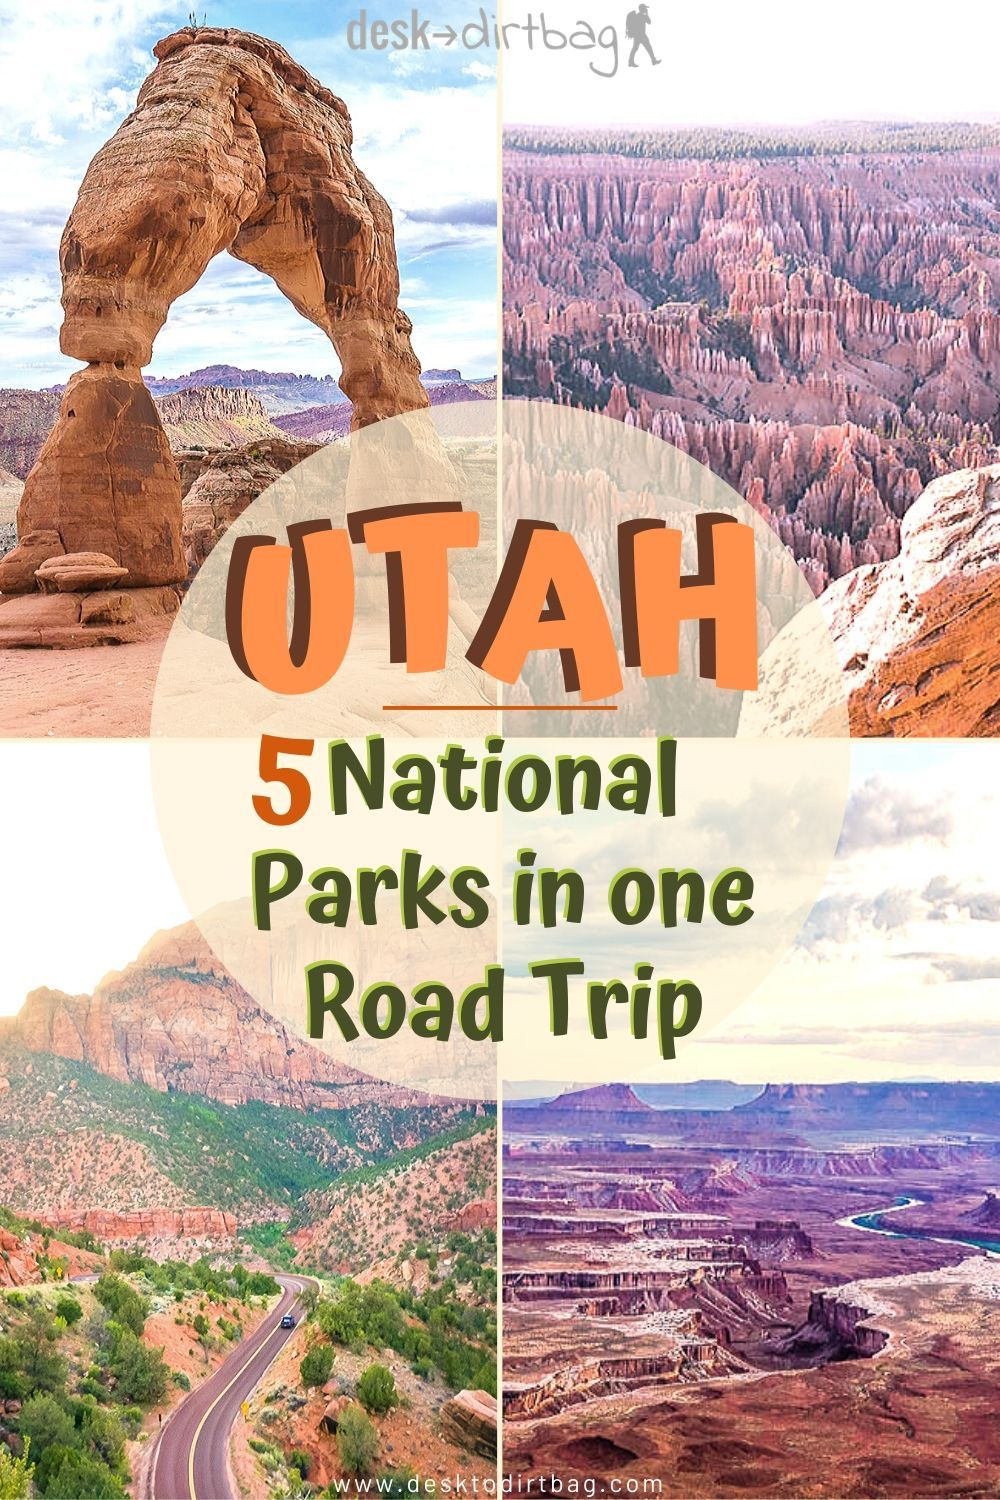 Southern Utah is probably the best place in the country for the sheer concentration of national parks and natural beauty, visit all five national parks (and more cool places) with this Utah national park road trip guide. #utah #nationalparks #roadtrip #outdoors #nationalparksroadtrip #scenicroads